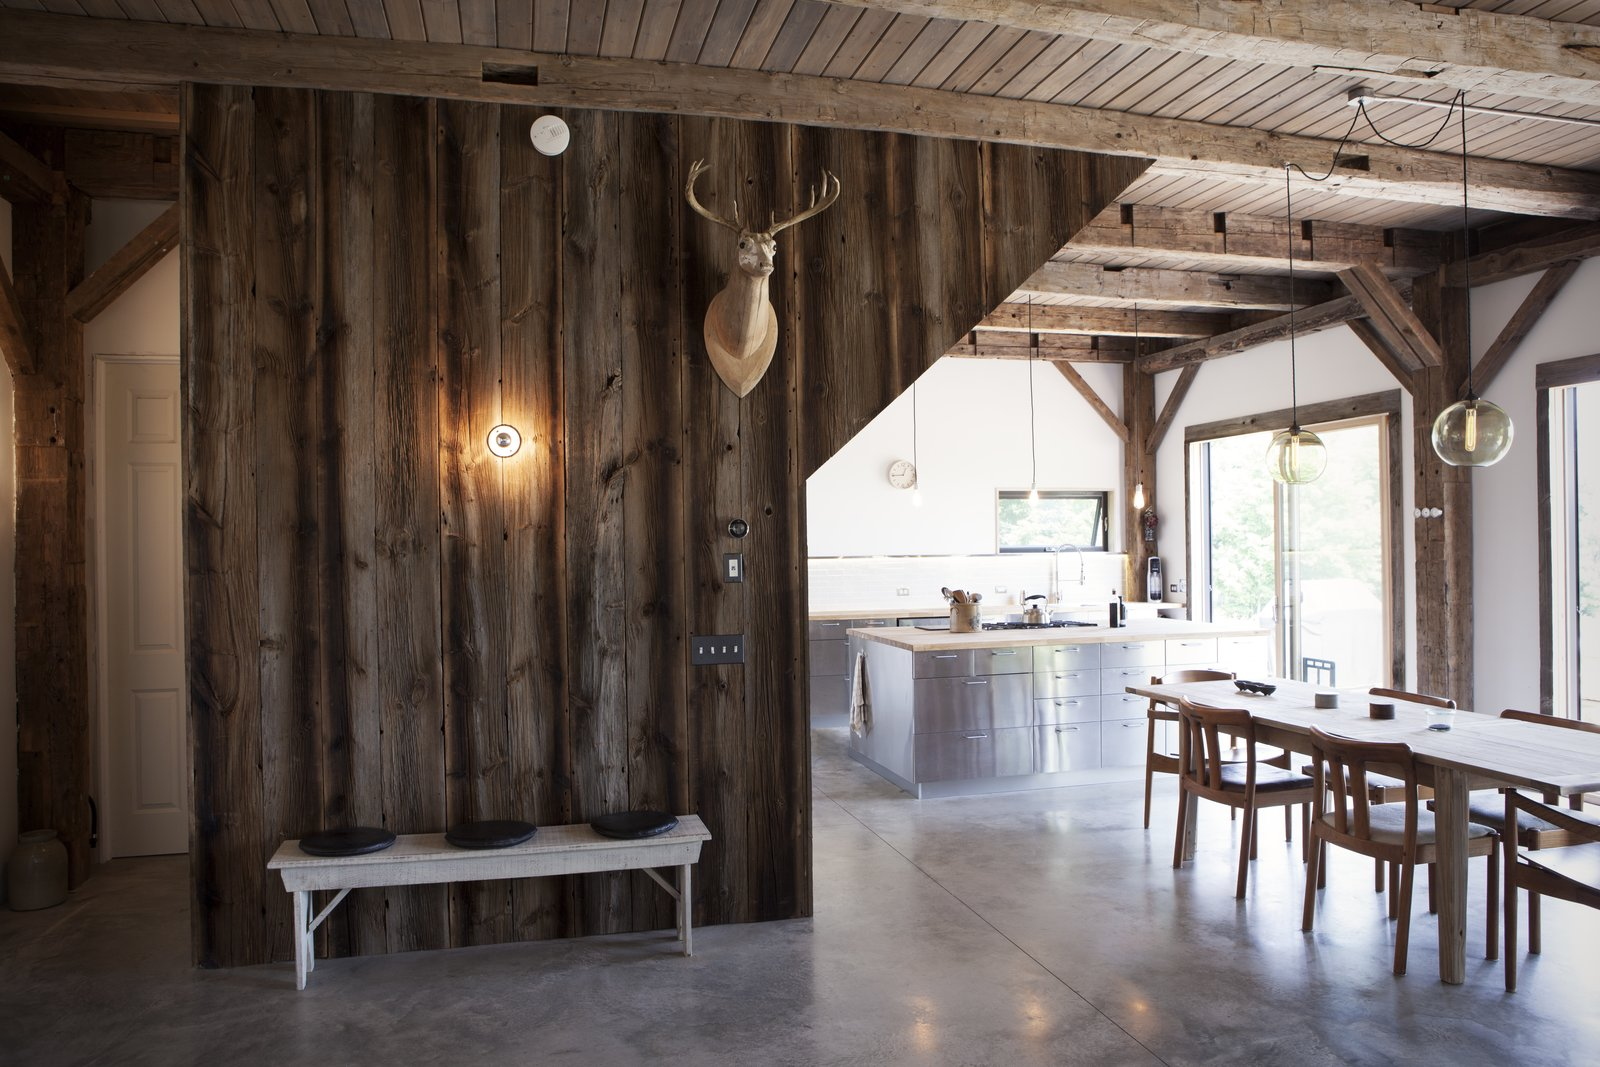 "Kitchen, Metal Cabinet, Concrete Floor, Pendant Lighting, and Wall Lighting The cabin's basic structure was reclaimed from a barn built in 1840 and purchased from Heritage Barns out of Waco, Texas. The same company supplied the recycled wood that clads the walls, though the ceiling boards are new. ""We stained them with a gray wash to match the tones of the post and beam, but with a more clean look,"" Bronee explains. The concrete floors were polished and waxed for a sleek finish.  Photo 7 of 8 in 8 Beautiful Home Projects Using Reclaimed Wood from A Slice of Scandinavian Design in the Catskills"